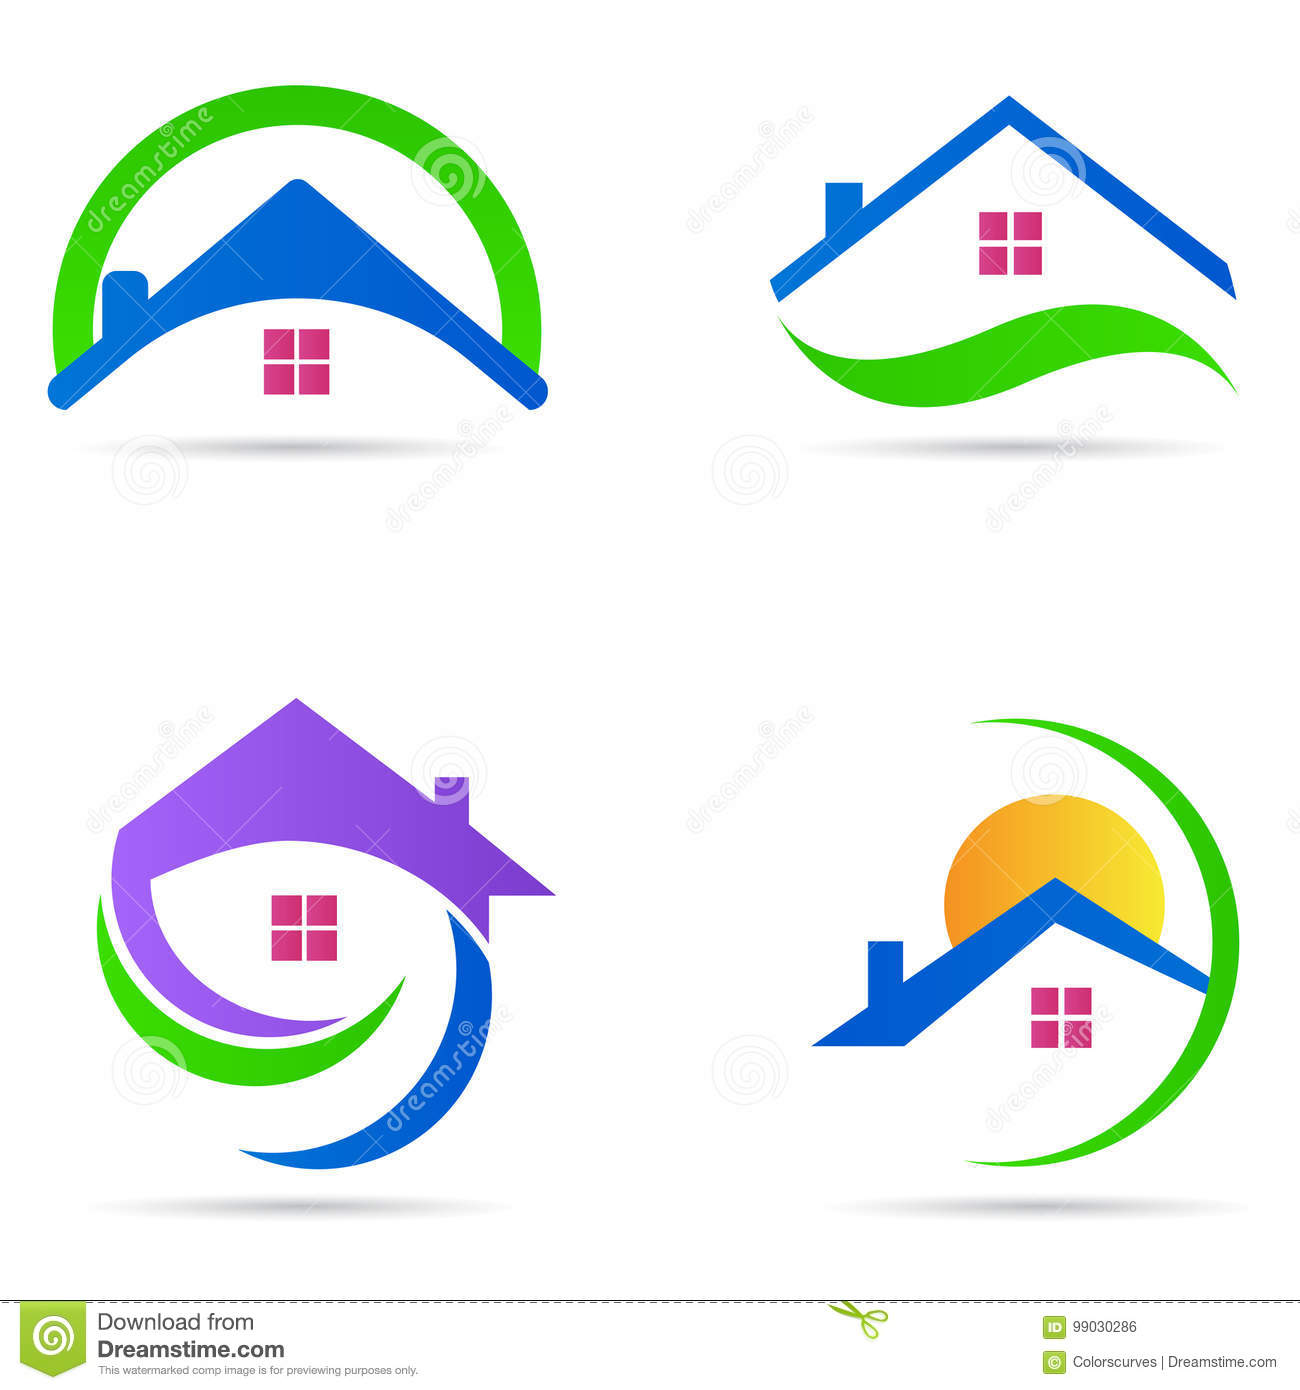 Estate stock illustrations 176168 estate stock illustrations home house logo real estate construction residential symbol vector icon set home house logo real biocorpaavc Image collections